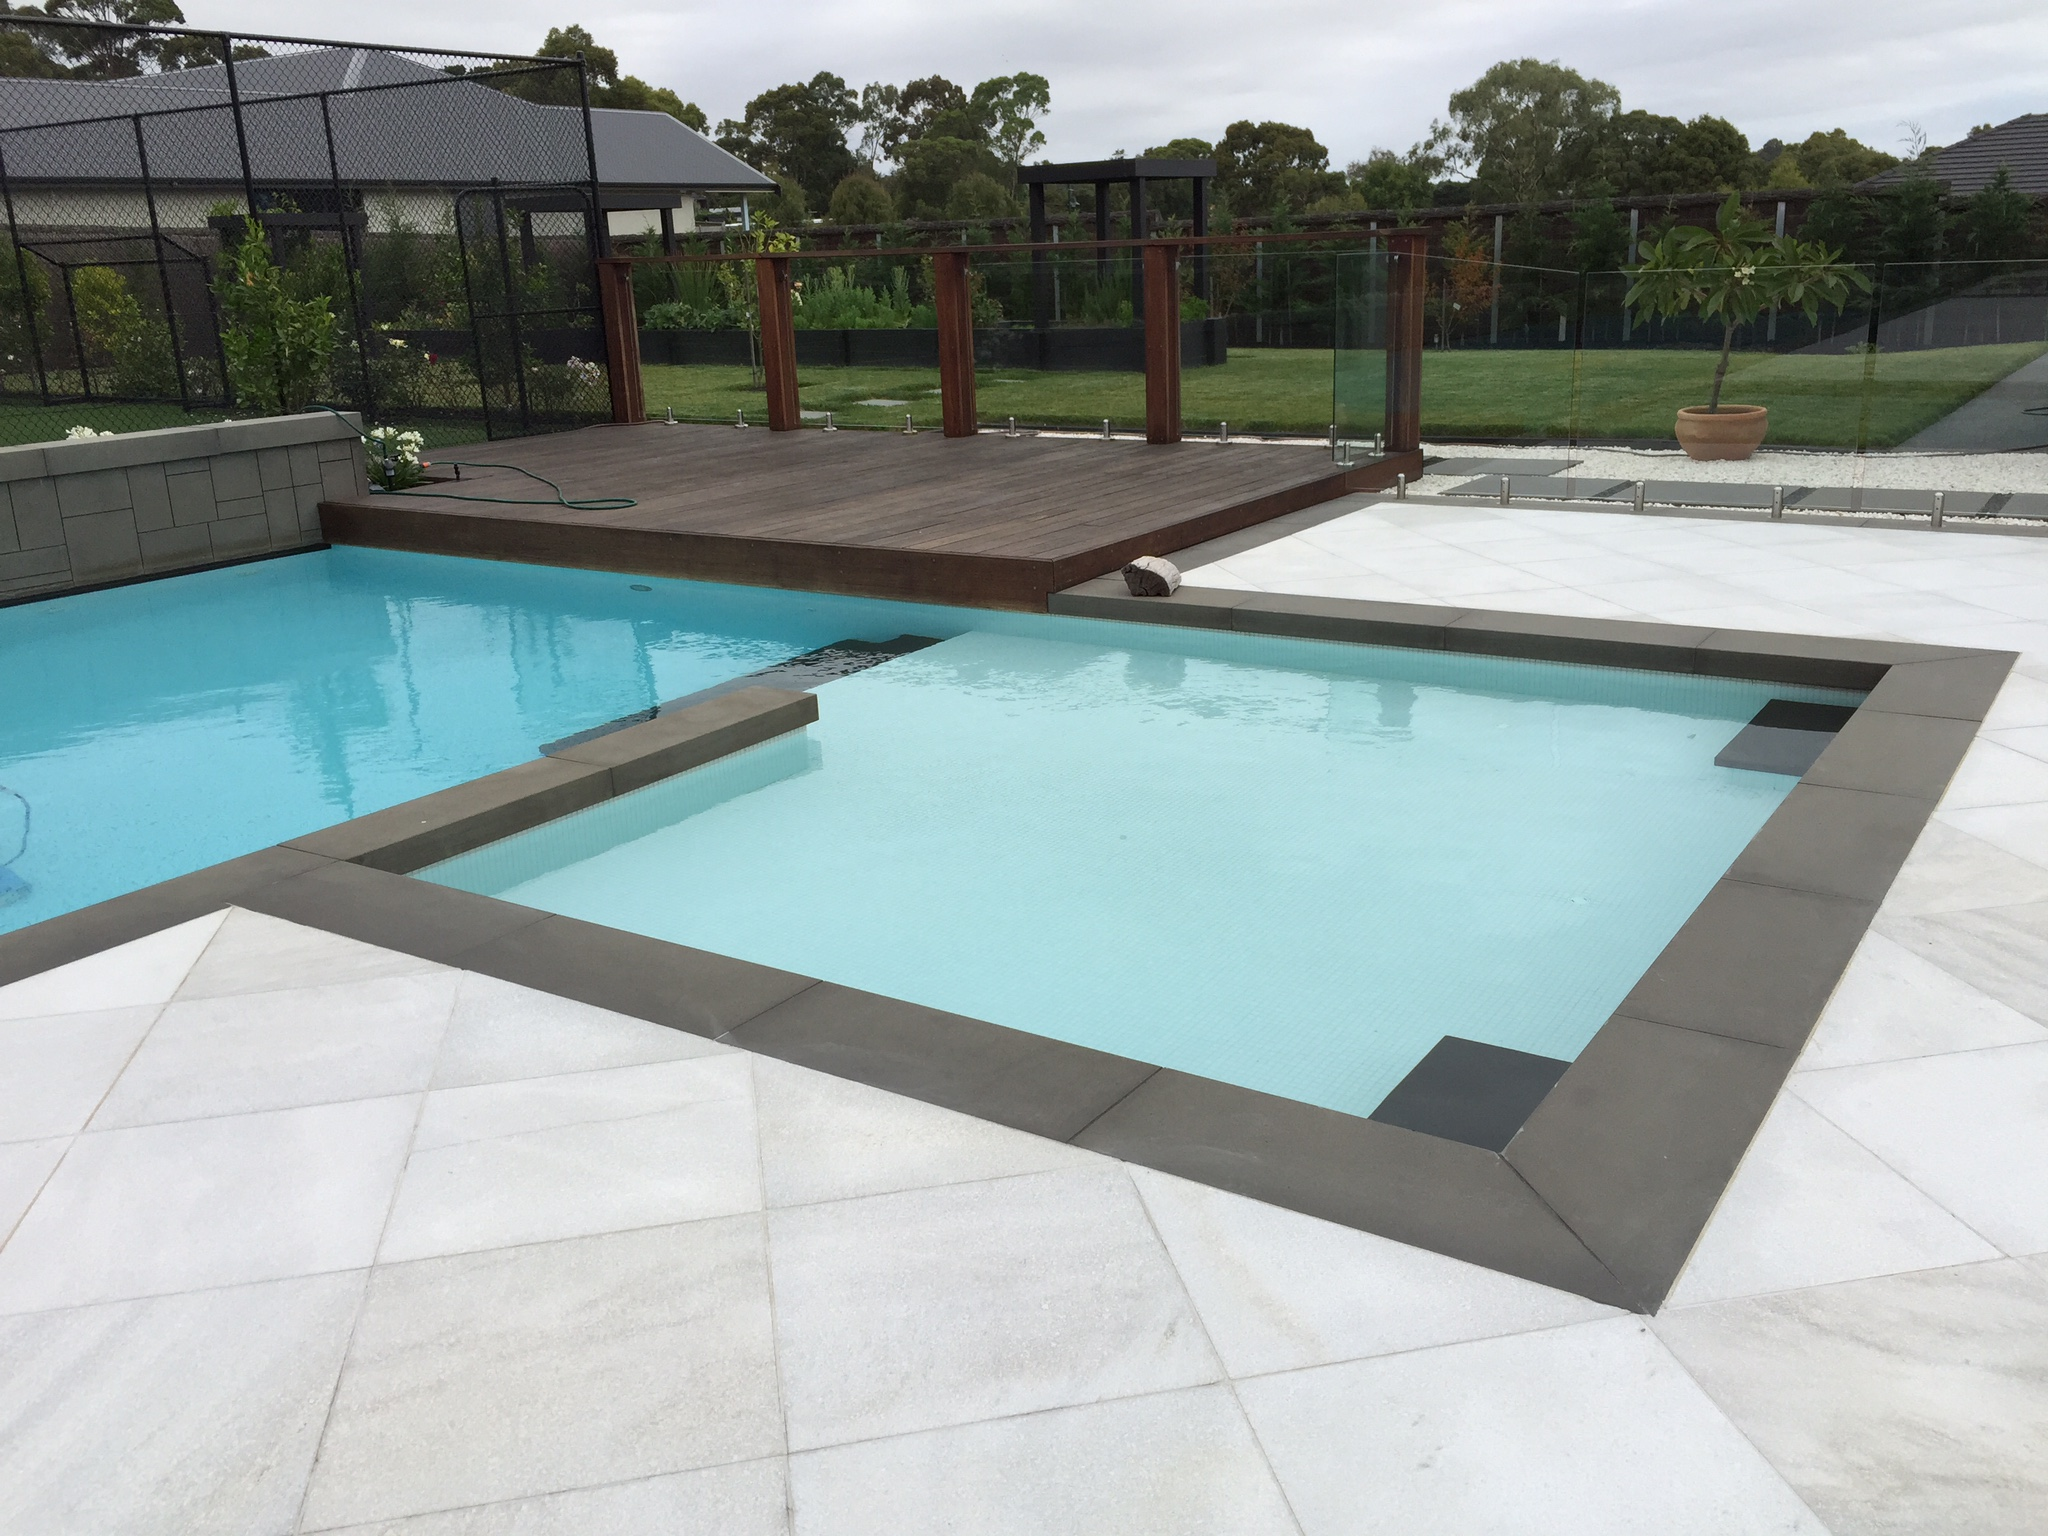 Pool pavers facts and information for Pool gallery